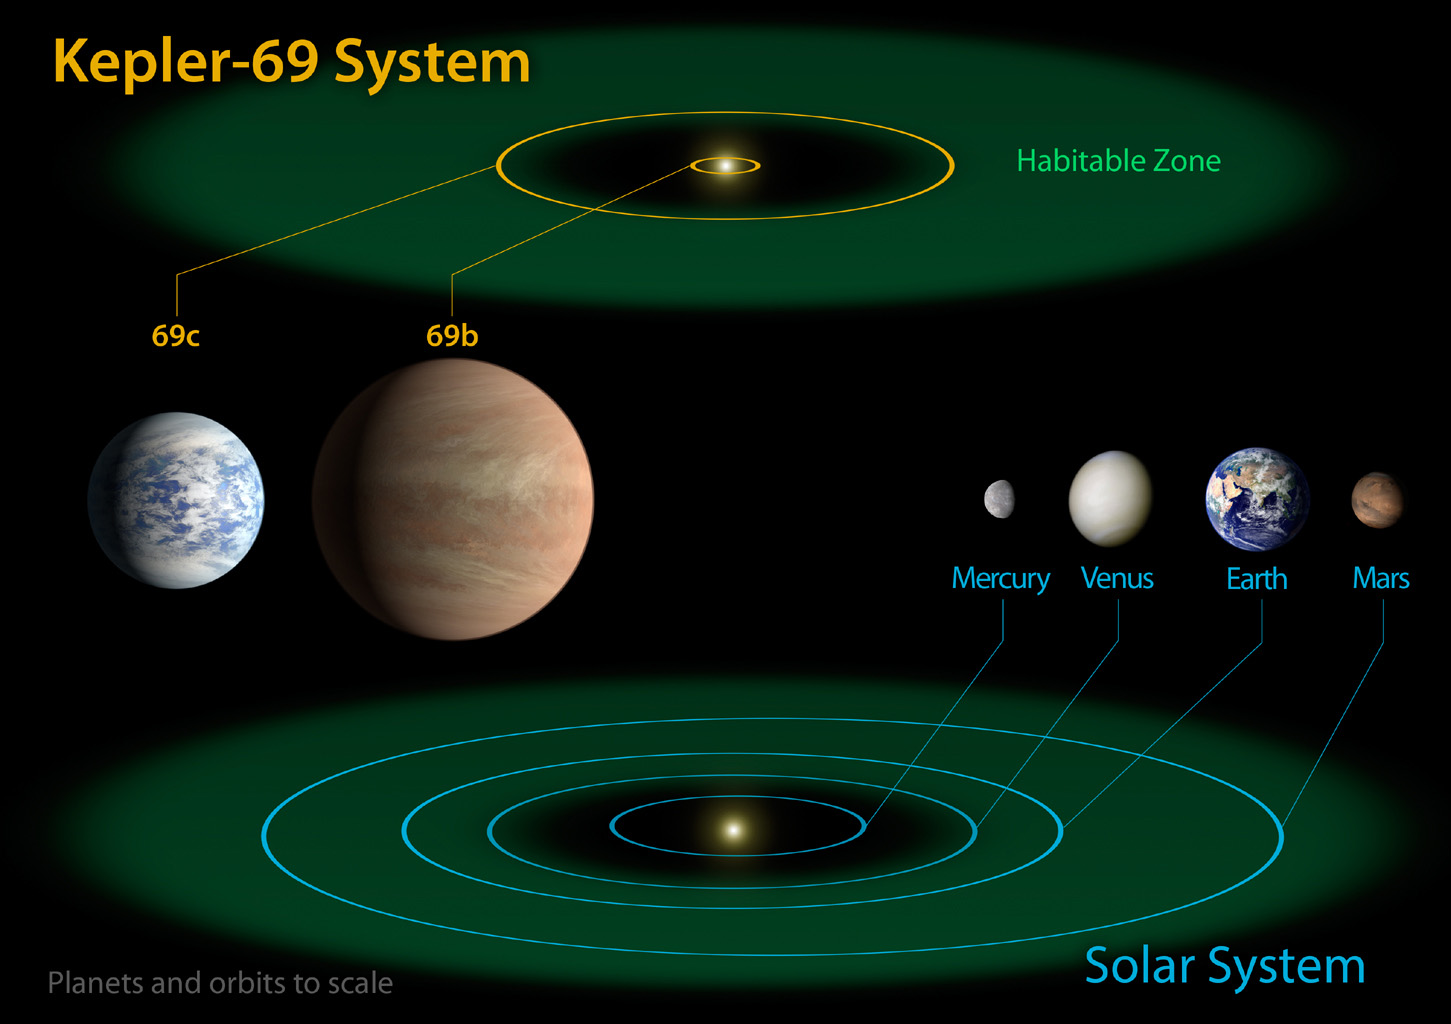 This diagram compares the planets of the inner solar system to Kepler-69, a two-planet system about 2,700 light-years from Earth in the constellation Cygnus.